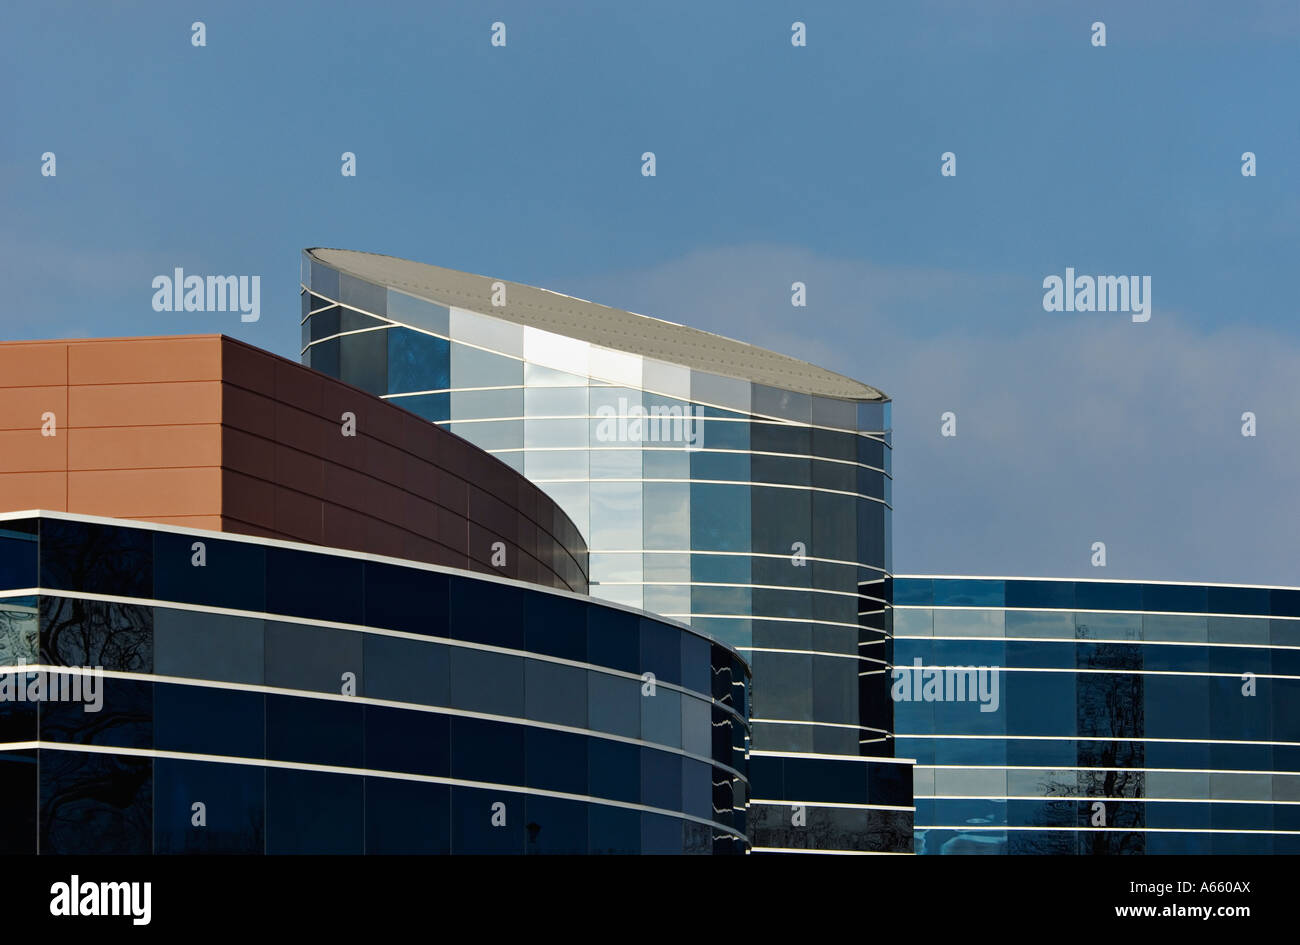 New Addition to Floyd Memorial Hospital New Albany Indiana - Stock Image